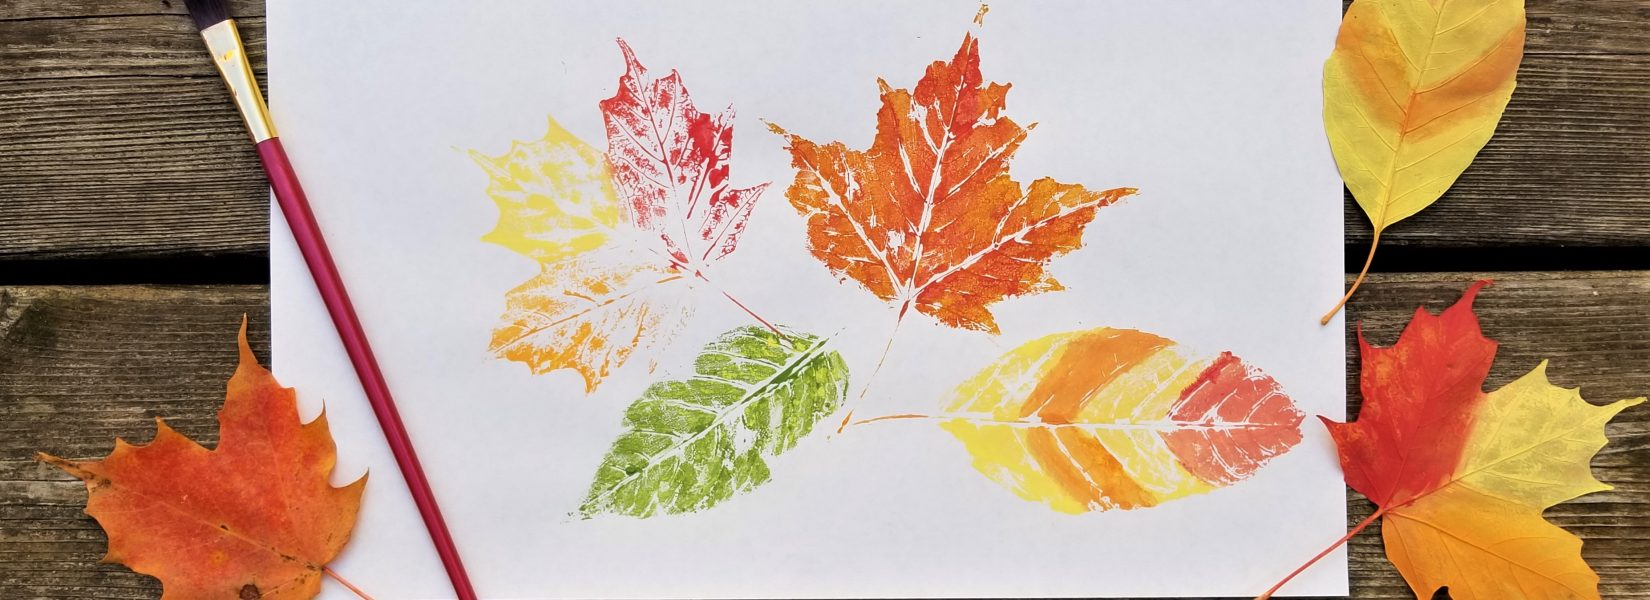 Shine Bright! – 3 Fall Bible Lessons and Leaf Art for Kids